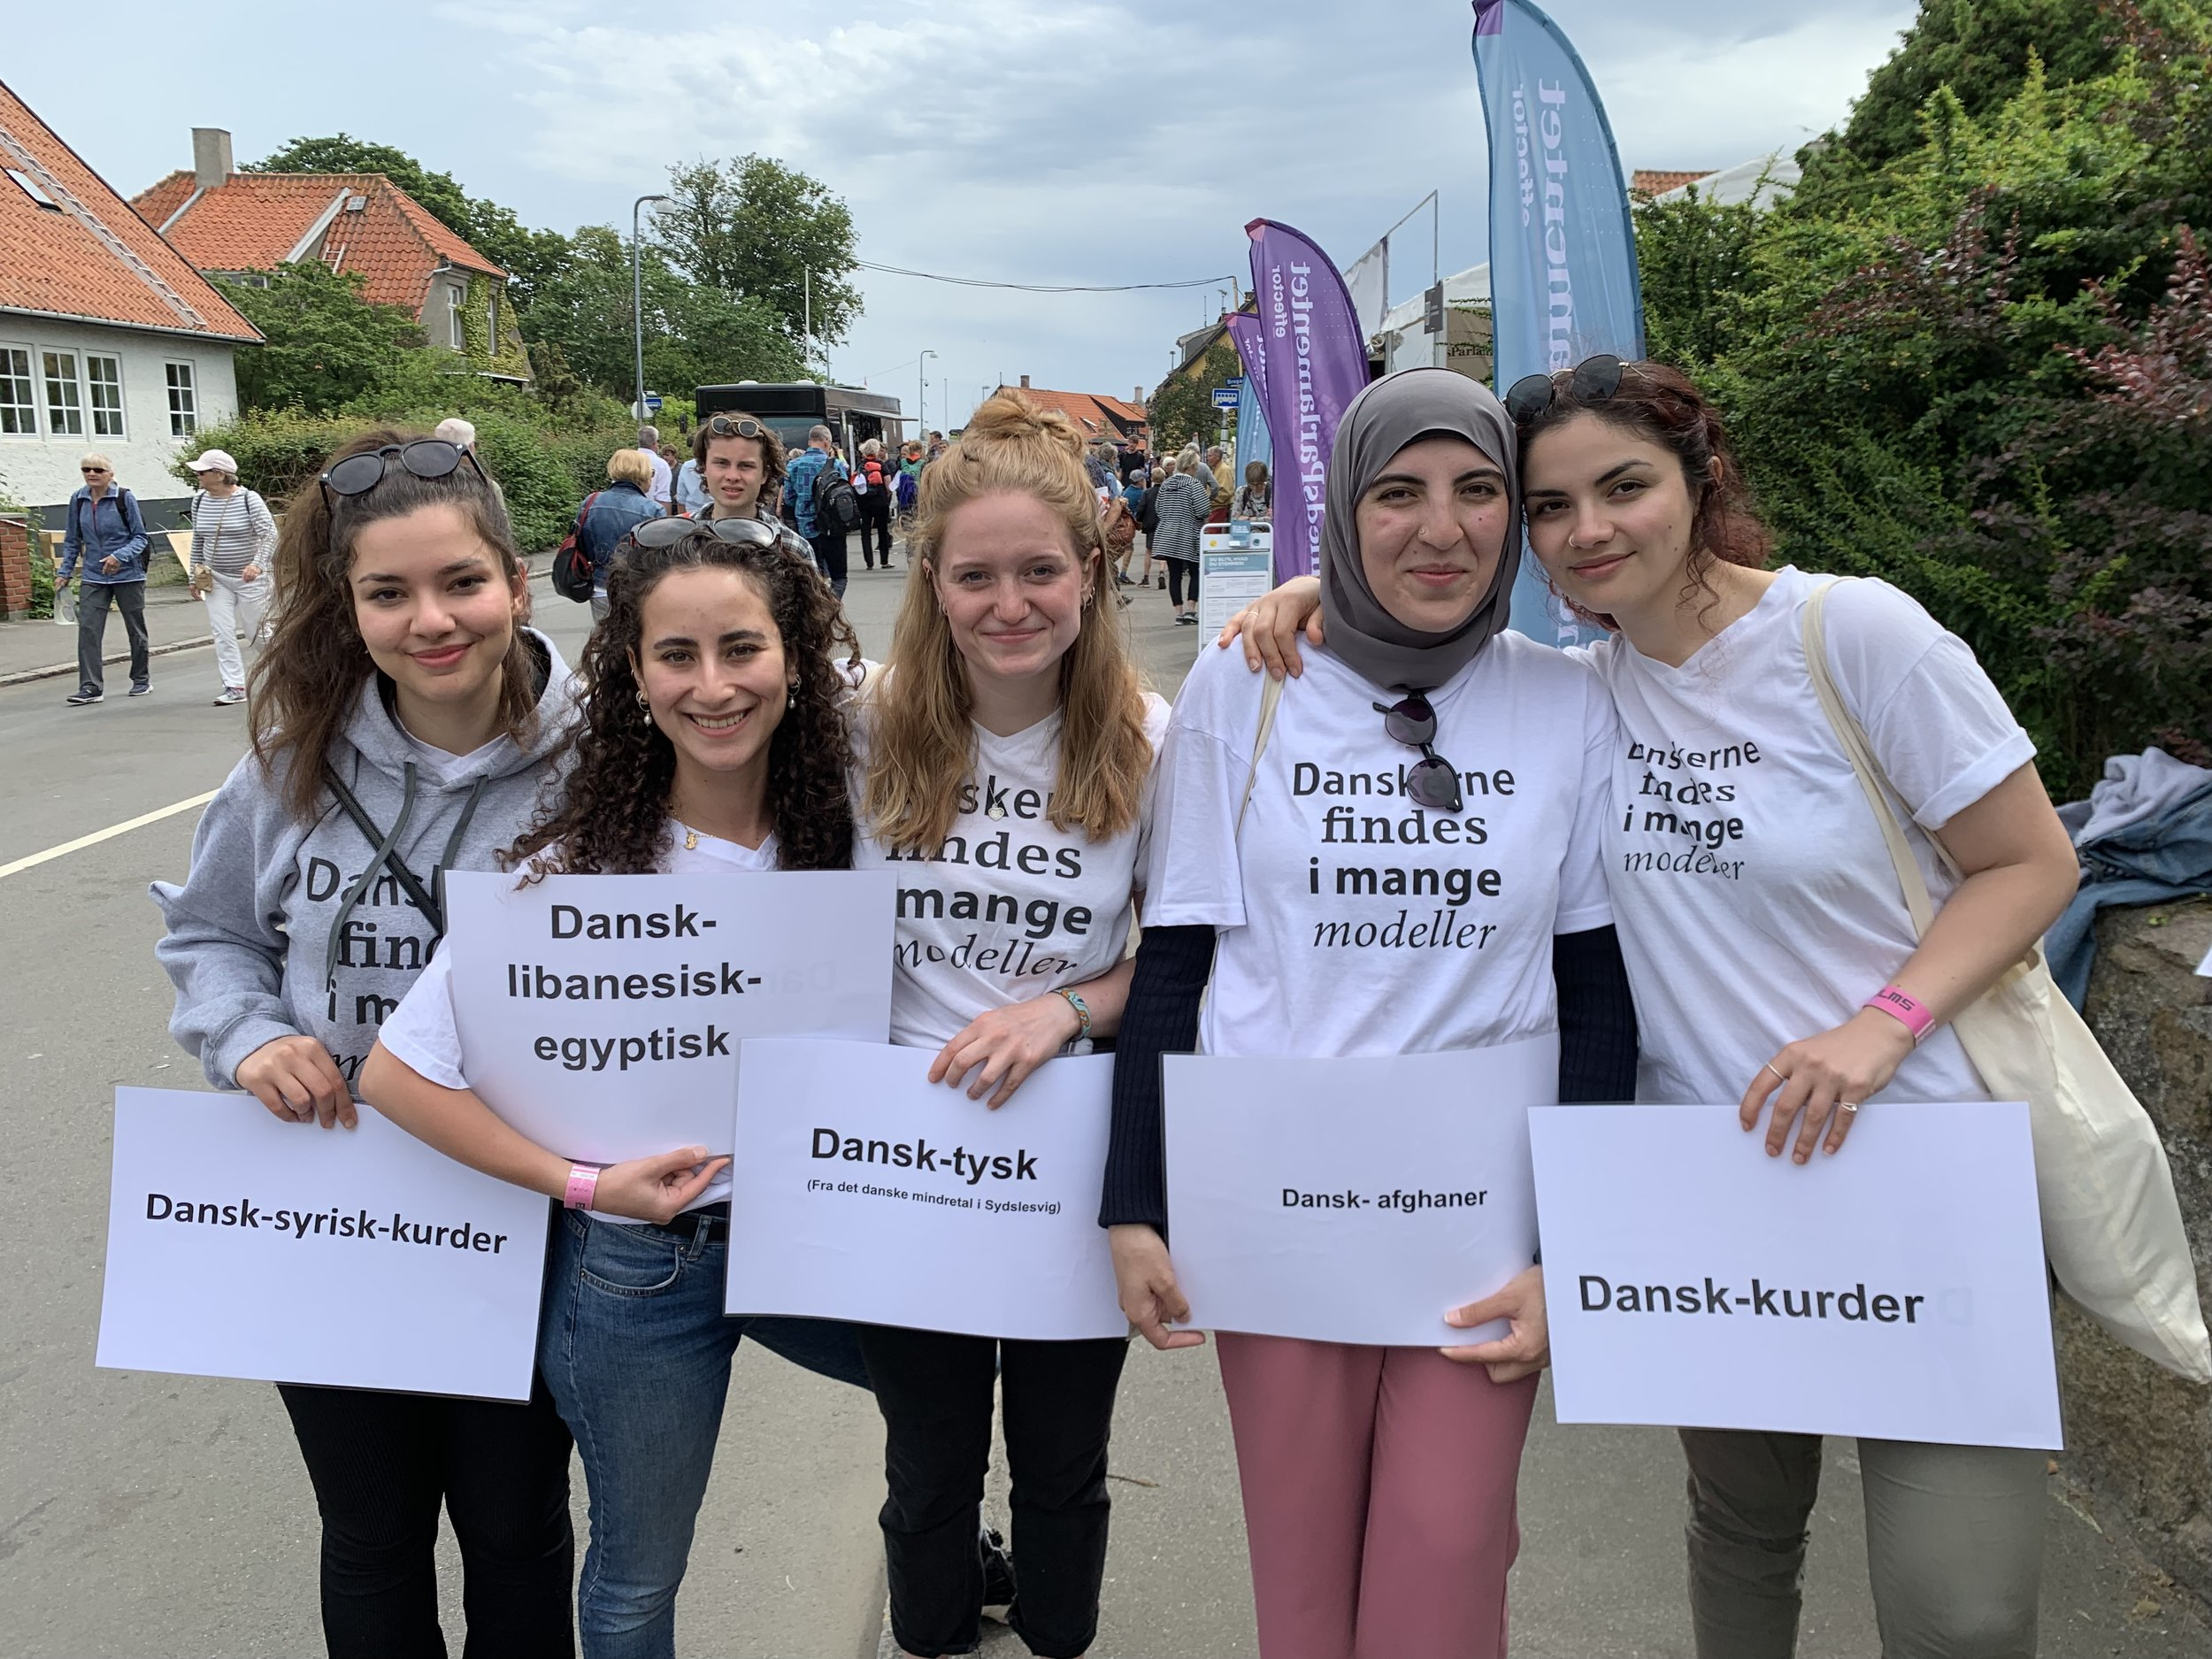 Zainab Ali Bazzi, second from left, with other Culture Ambassadors from the association Grænseforeningen.